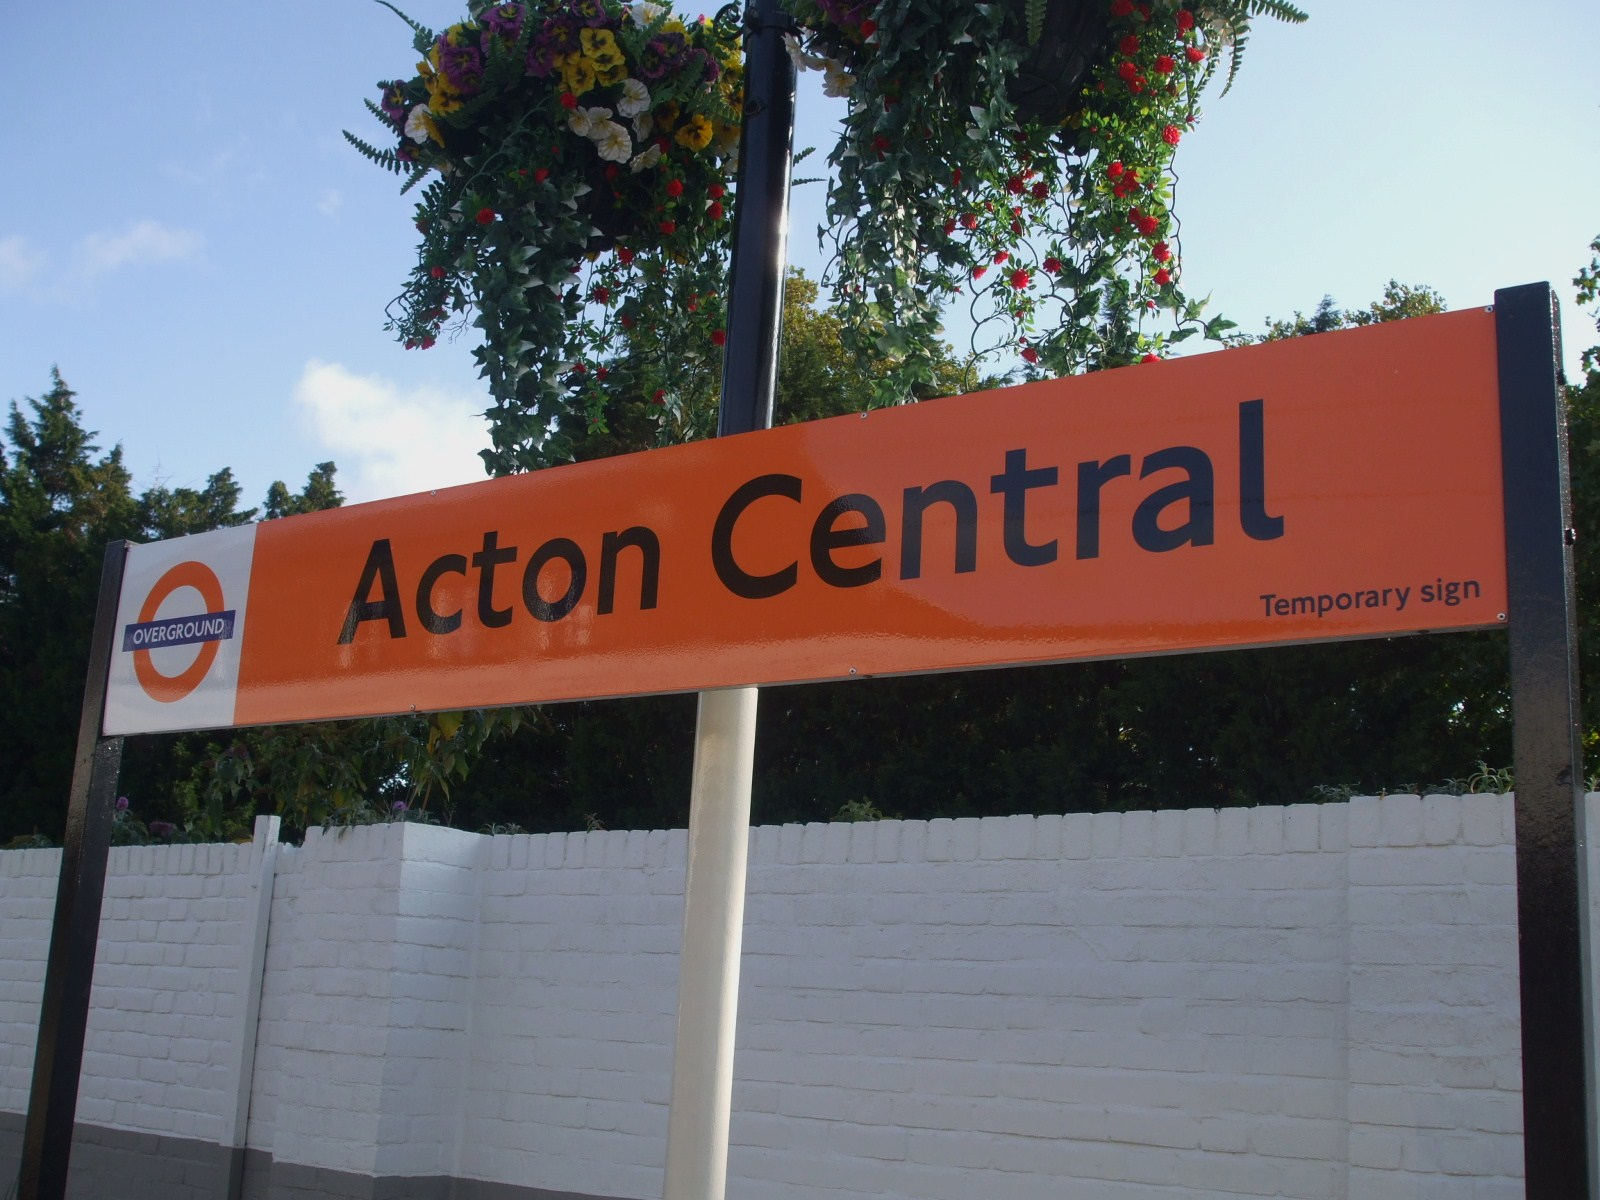 Acton_Central_stn_signage